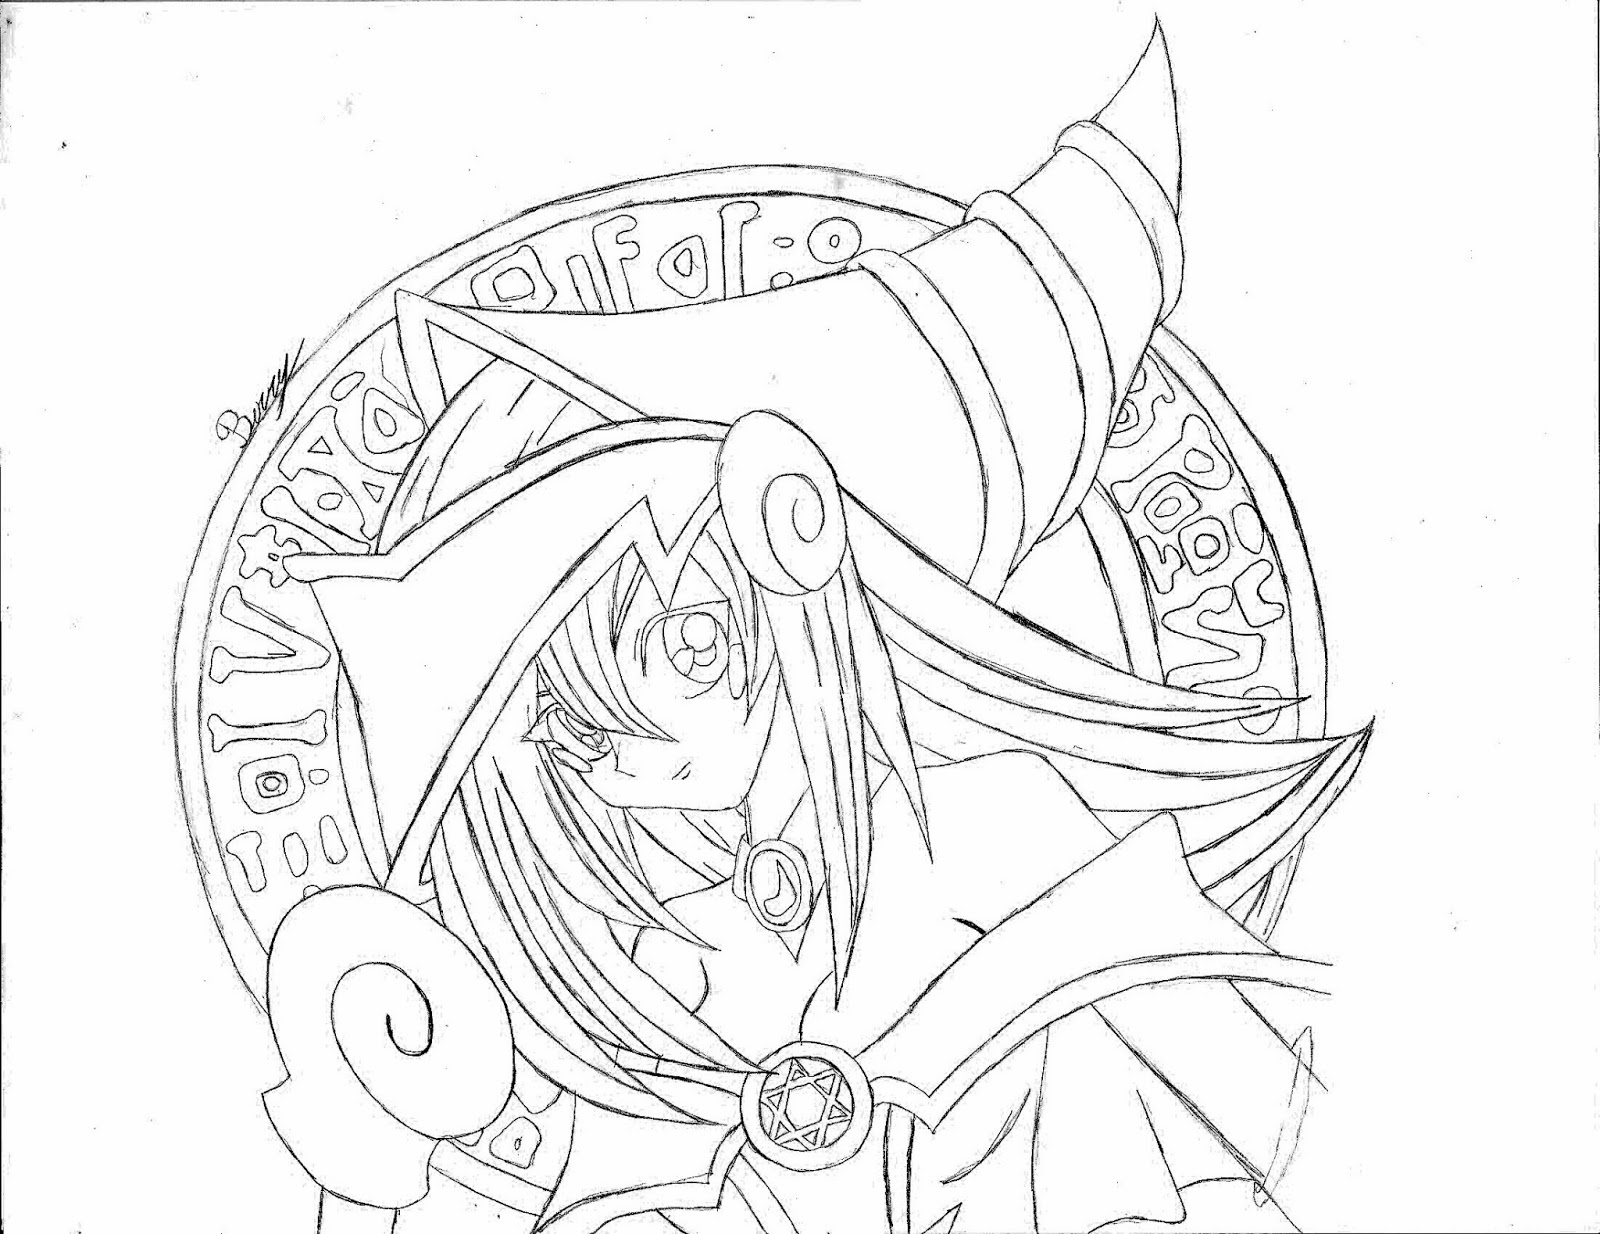 Free coloring pages yugioh - Yugioh Coloring Pages To Print Latest Coloring Pages Yu Gi Oh